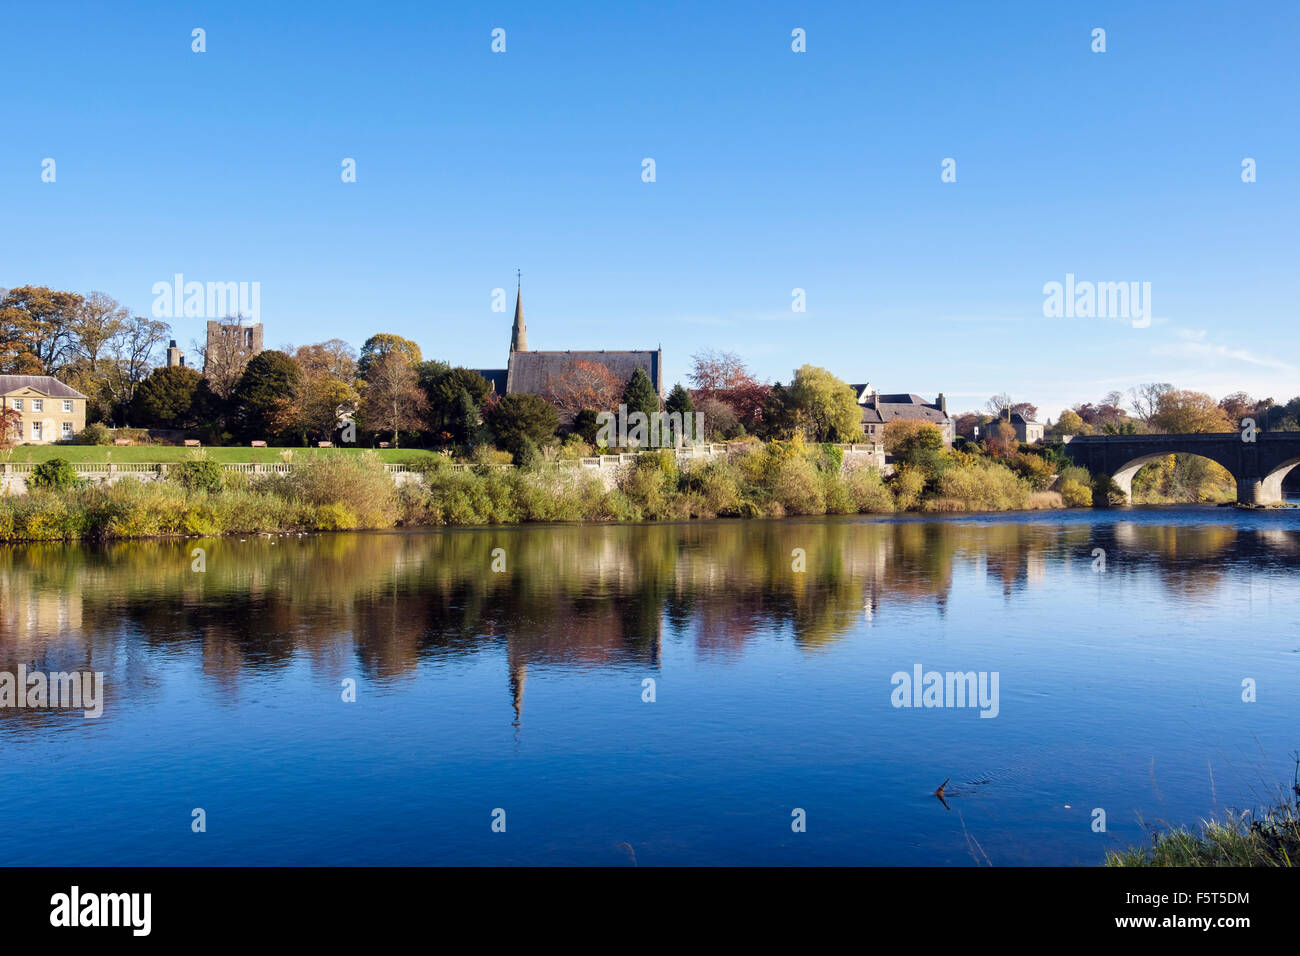 Abbey by St Andrews church and bridge from across River Tweed. Kelso, Berwickshire, Scottish Borders, Scotland, - Stock Image